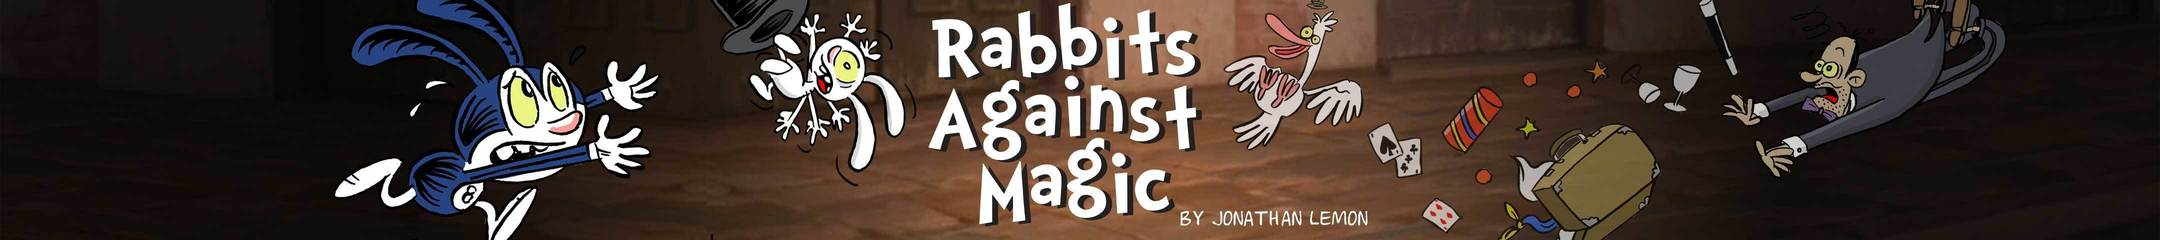 Rabbits Against Magic